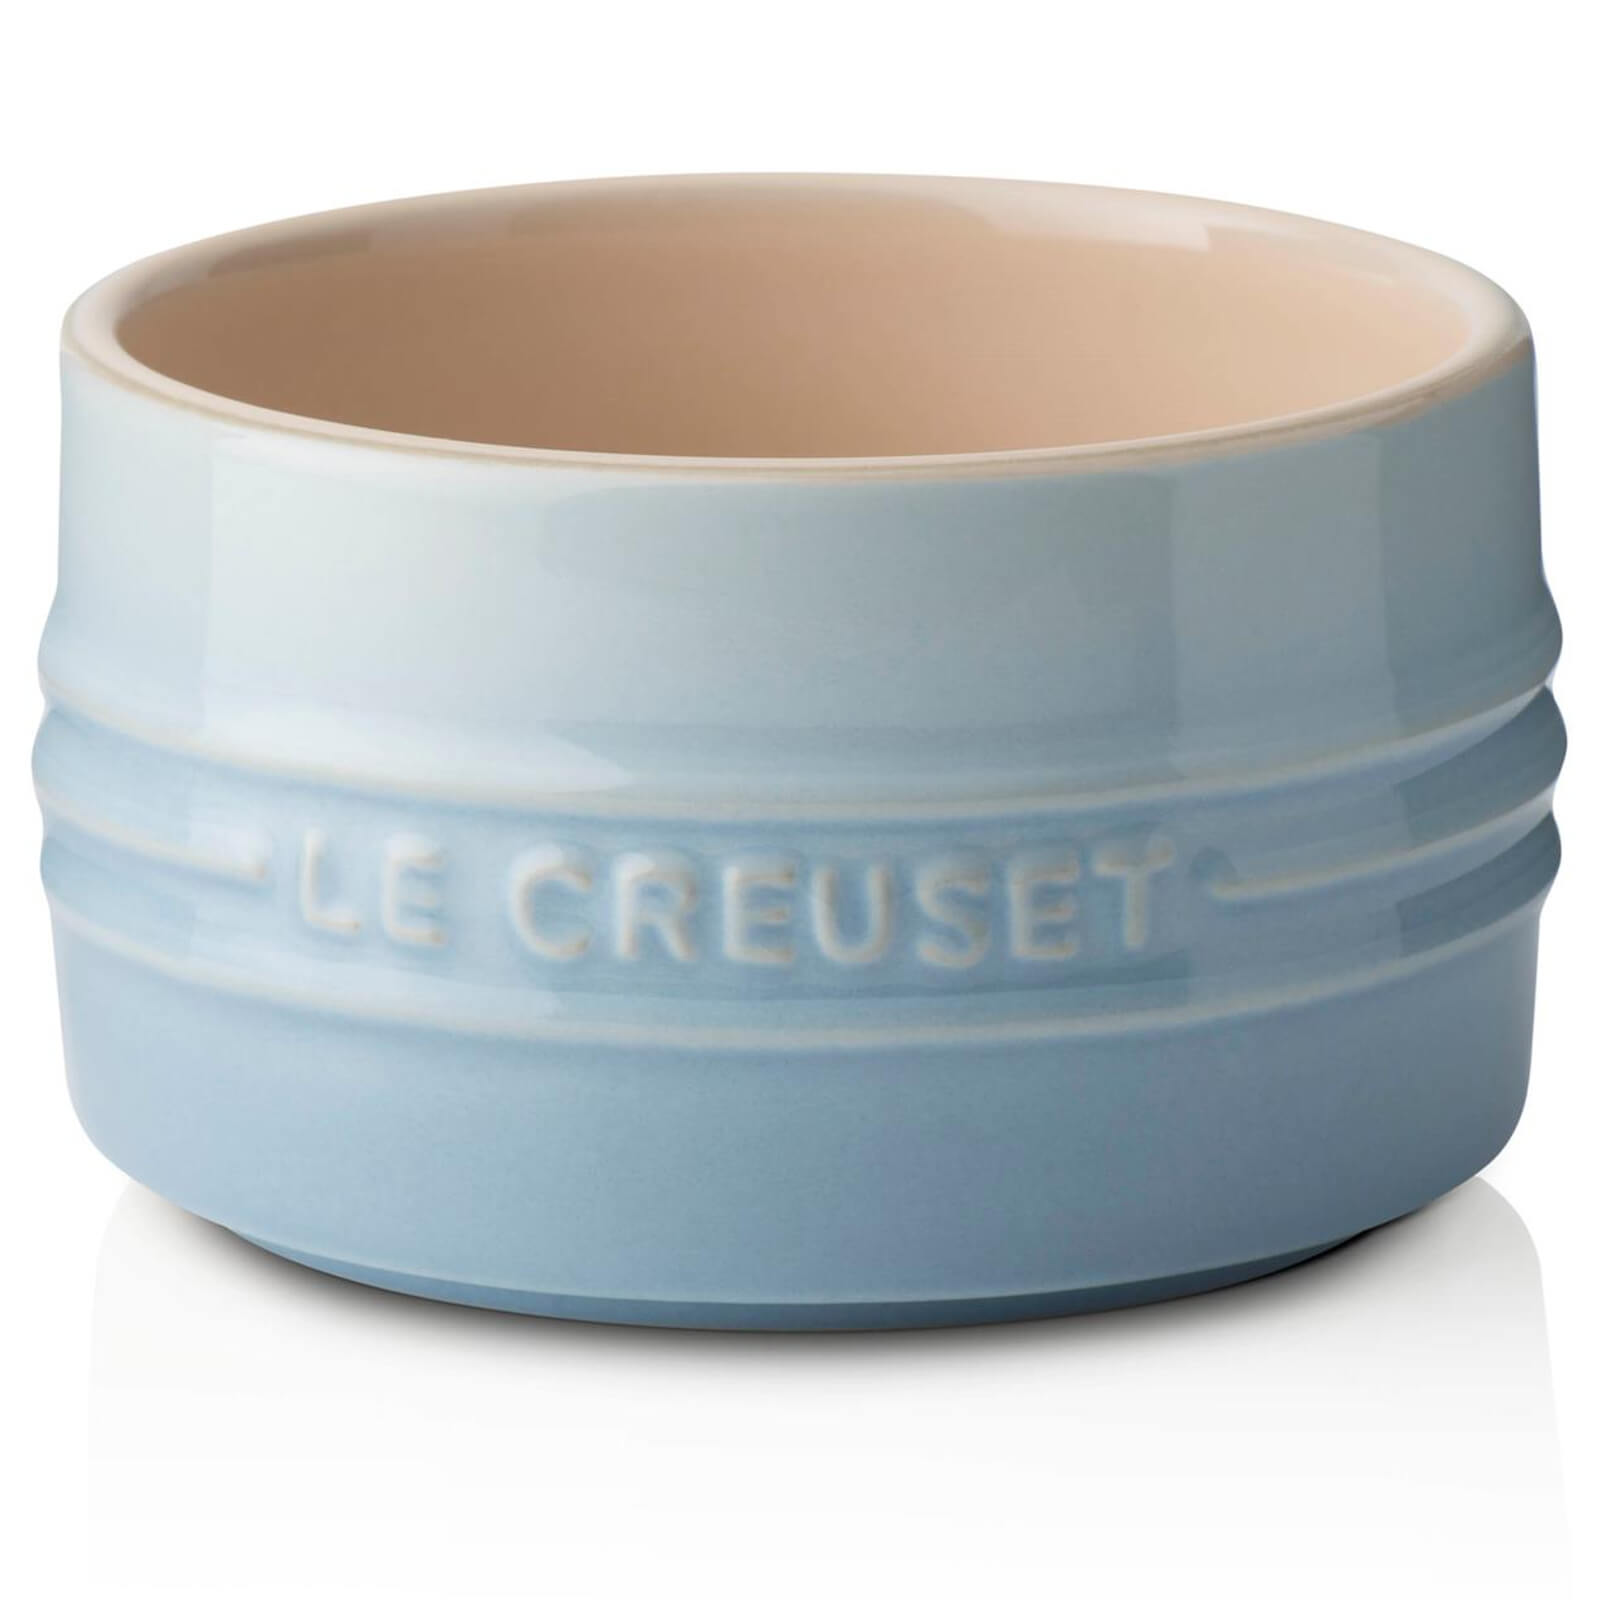 Le Creuset Stoneware Stackable Ramekin - Coastal Blue